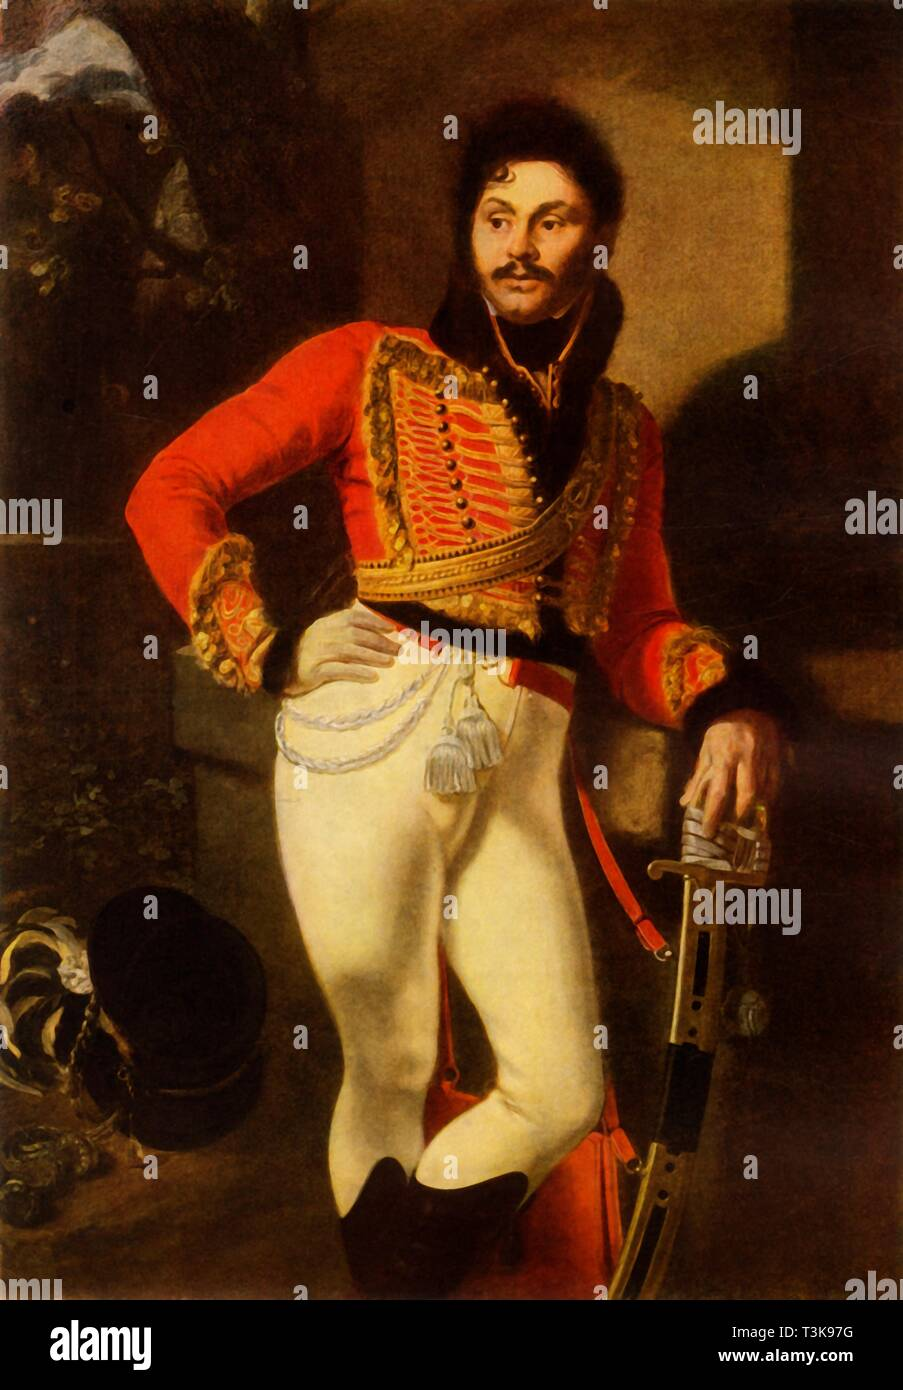 "'Portrait of Yevgraf Vladimirovich Davydov', 1822, (1965). Russian soldier Yevgraf Davydov (1775-1823) fought in the Napoleonic Wars at the Battle of Austerlitz and the Battle of Ostrovnoye. He lost an arm and a leg at the Battle of Leipzig (1813), and was decorated with military honours. Orest Kiprensky (1782-1836) was born a serf near Saint Petersburg, and while still a boy gained a place to study at the Imperial Academy of Arts in the city. He lived for some years in Italy. Painting in the State Russian Museum, St Petersburg. From ""Russian Painting of the 18th and 19th Centuries""  - Stock Image"